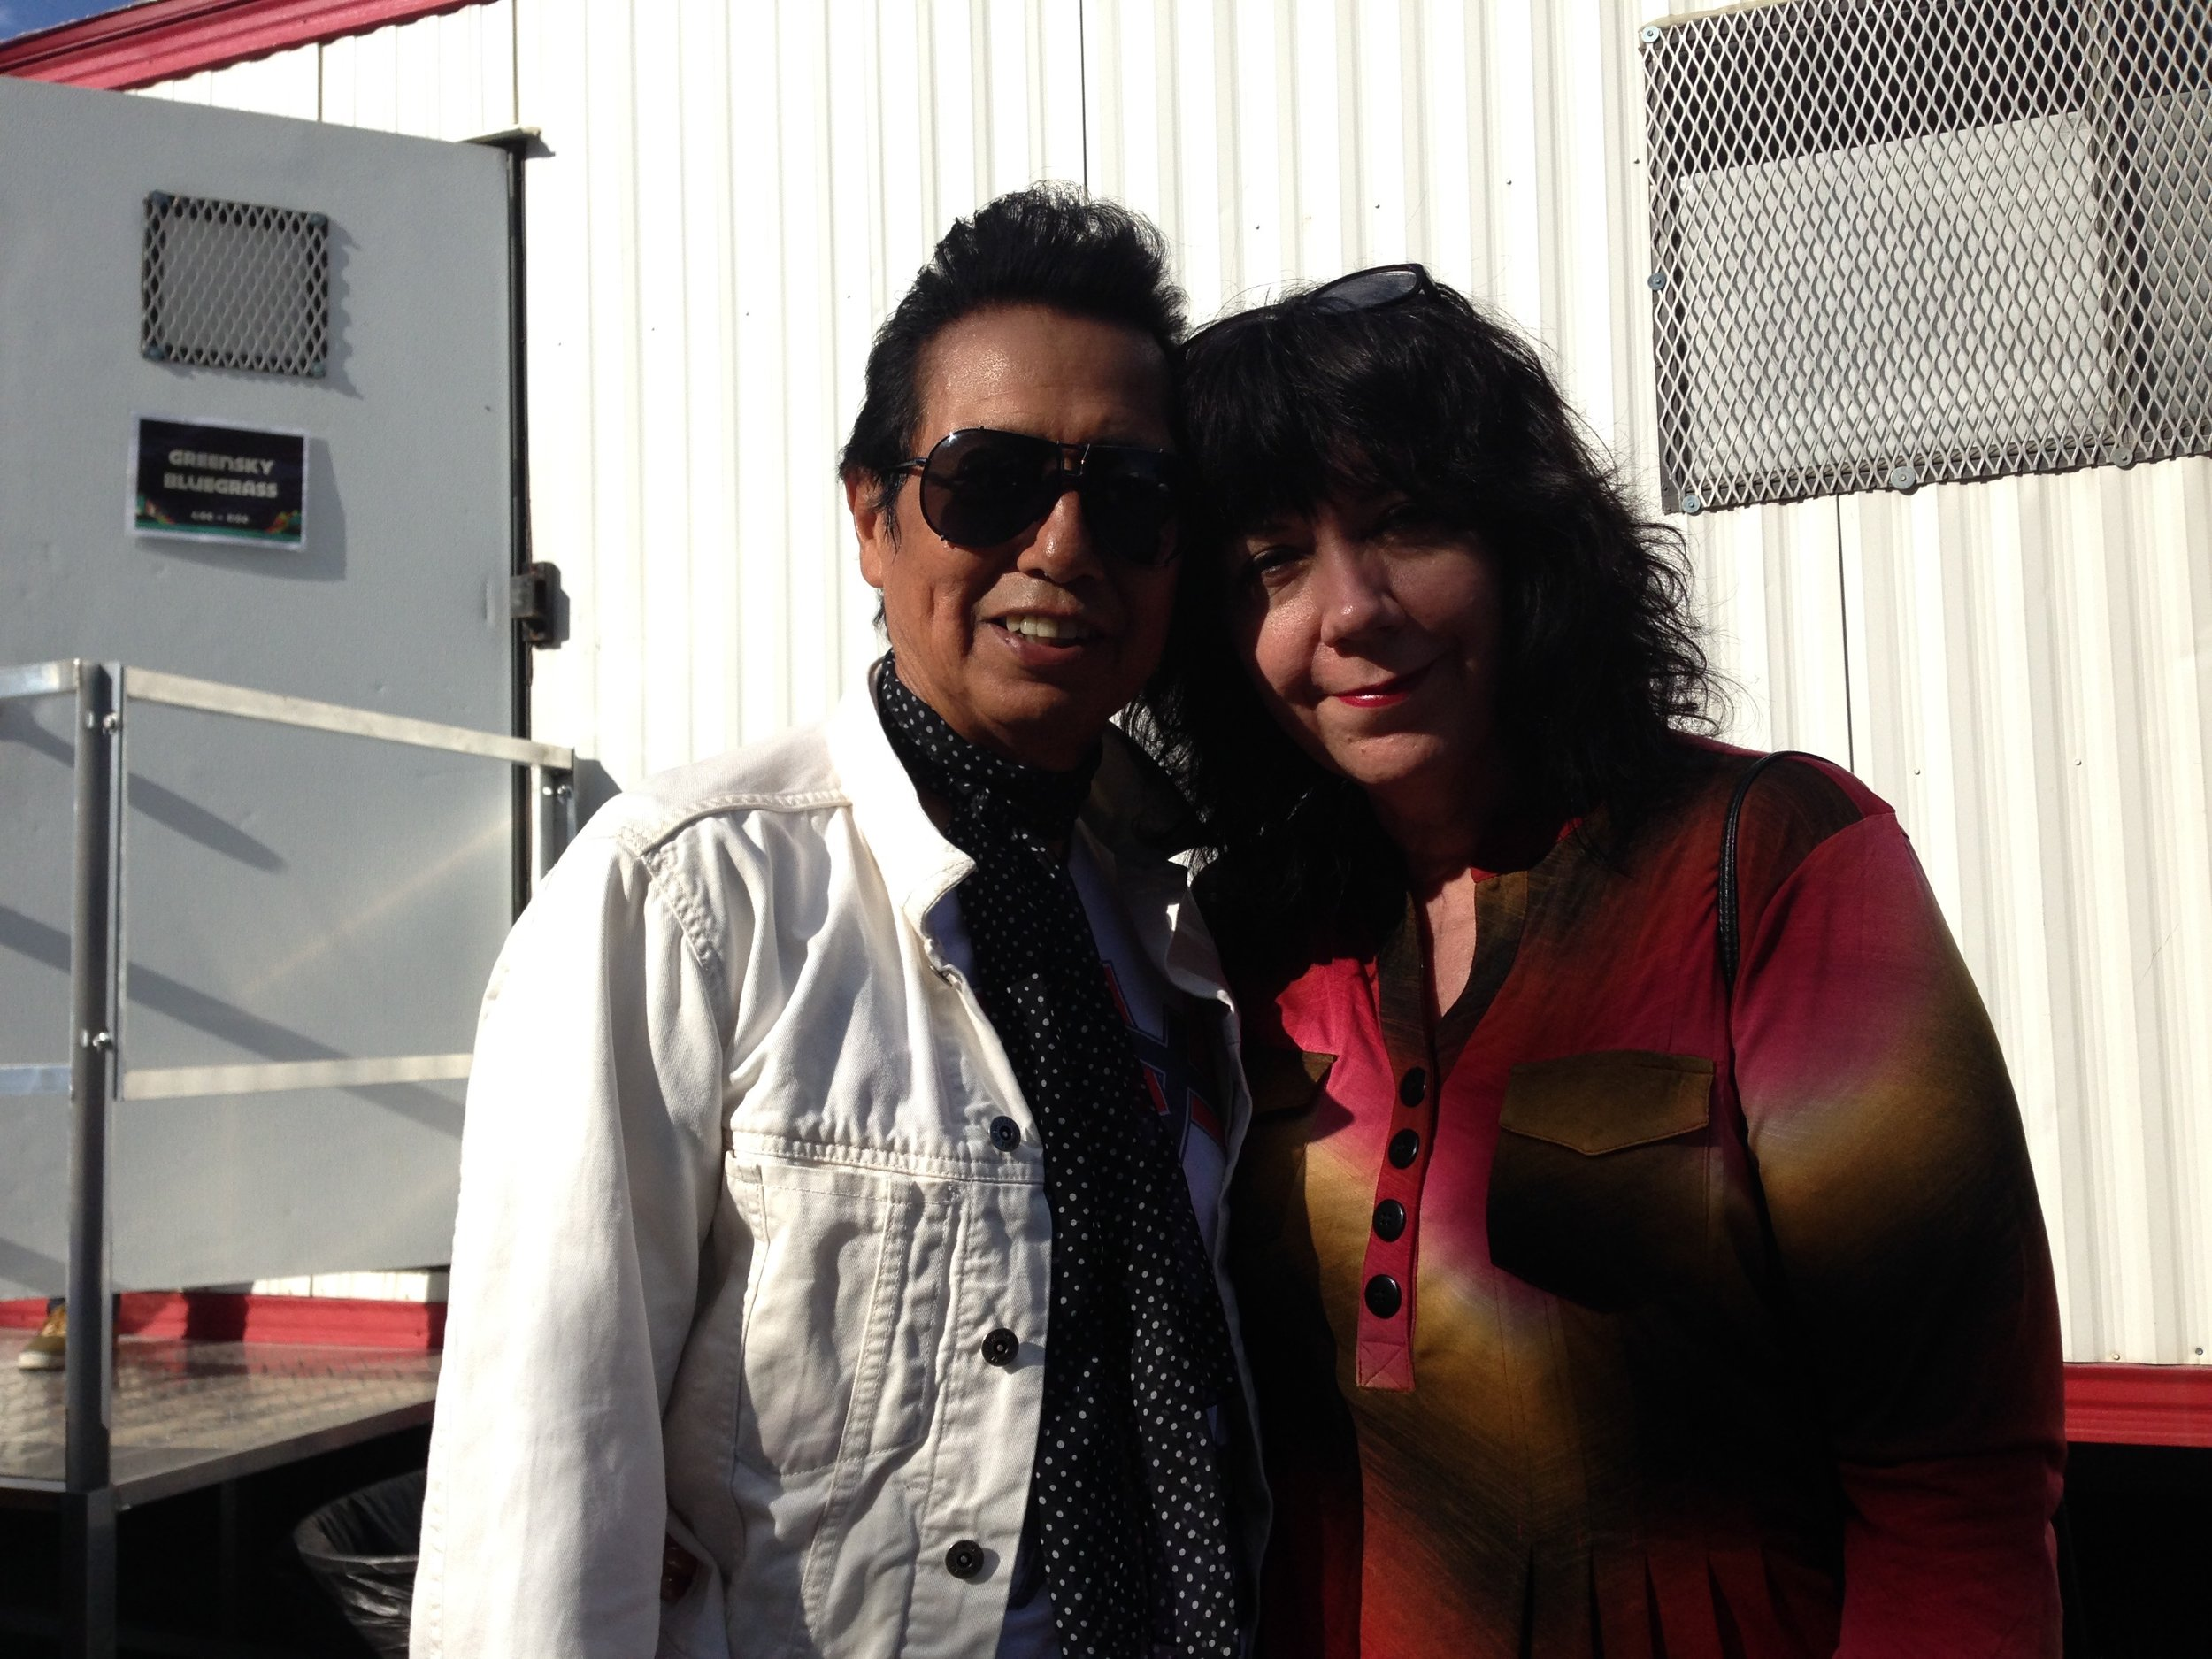 Alejandro Escovedo and I at ACL Music Festival 2013